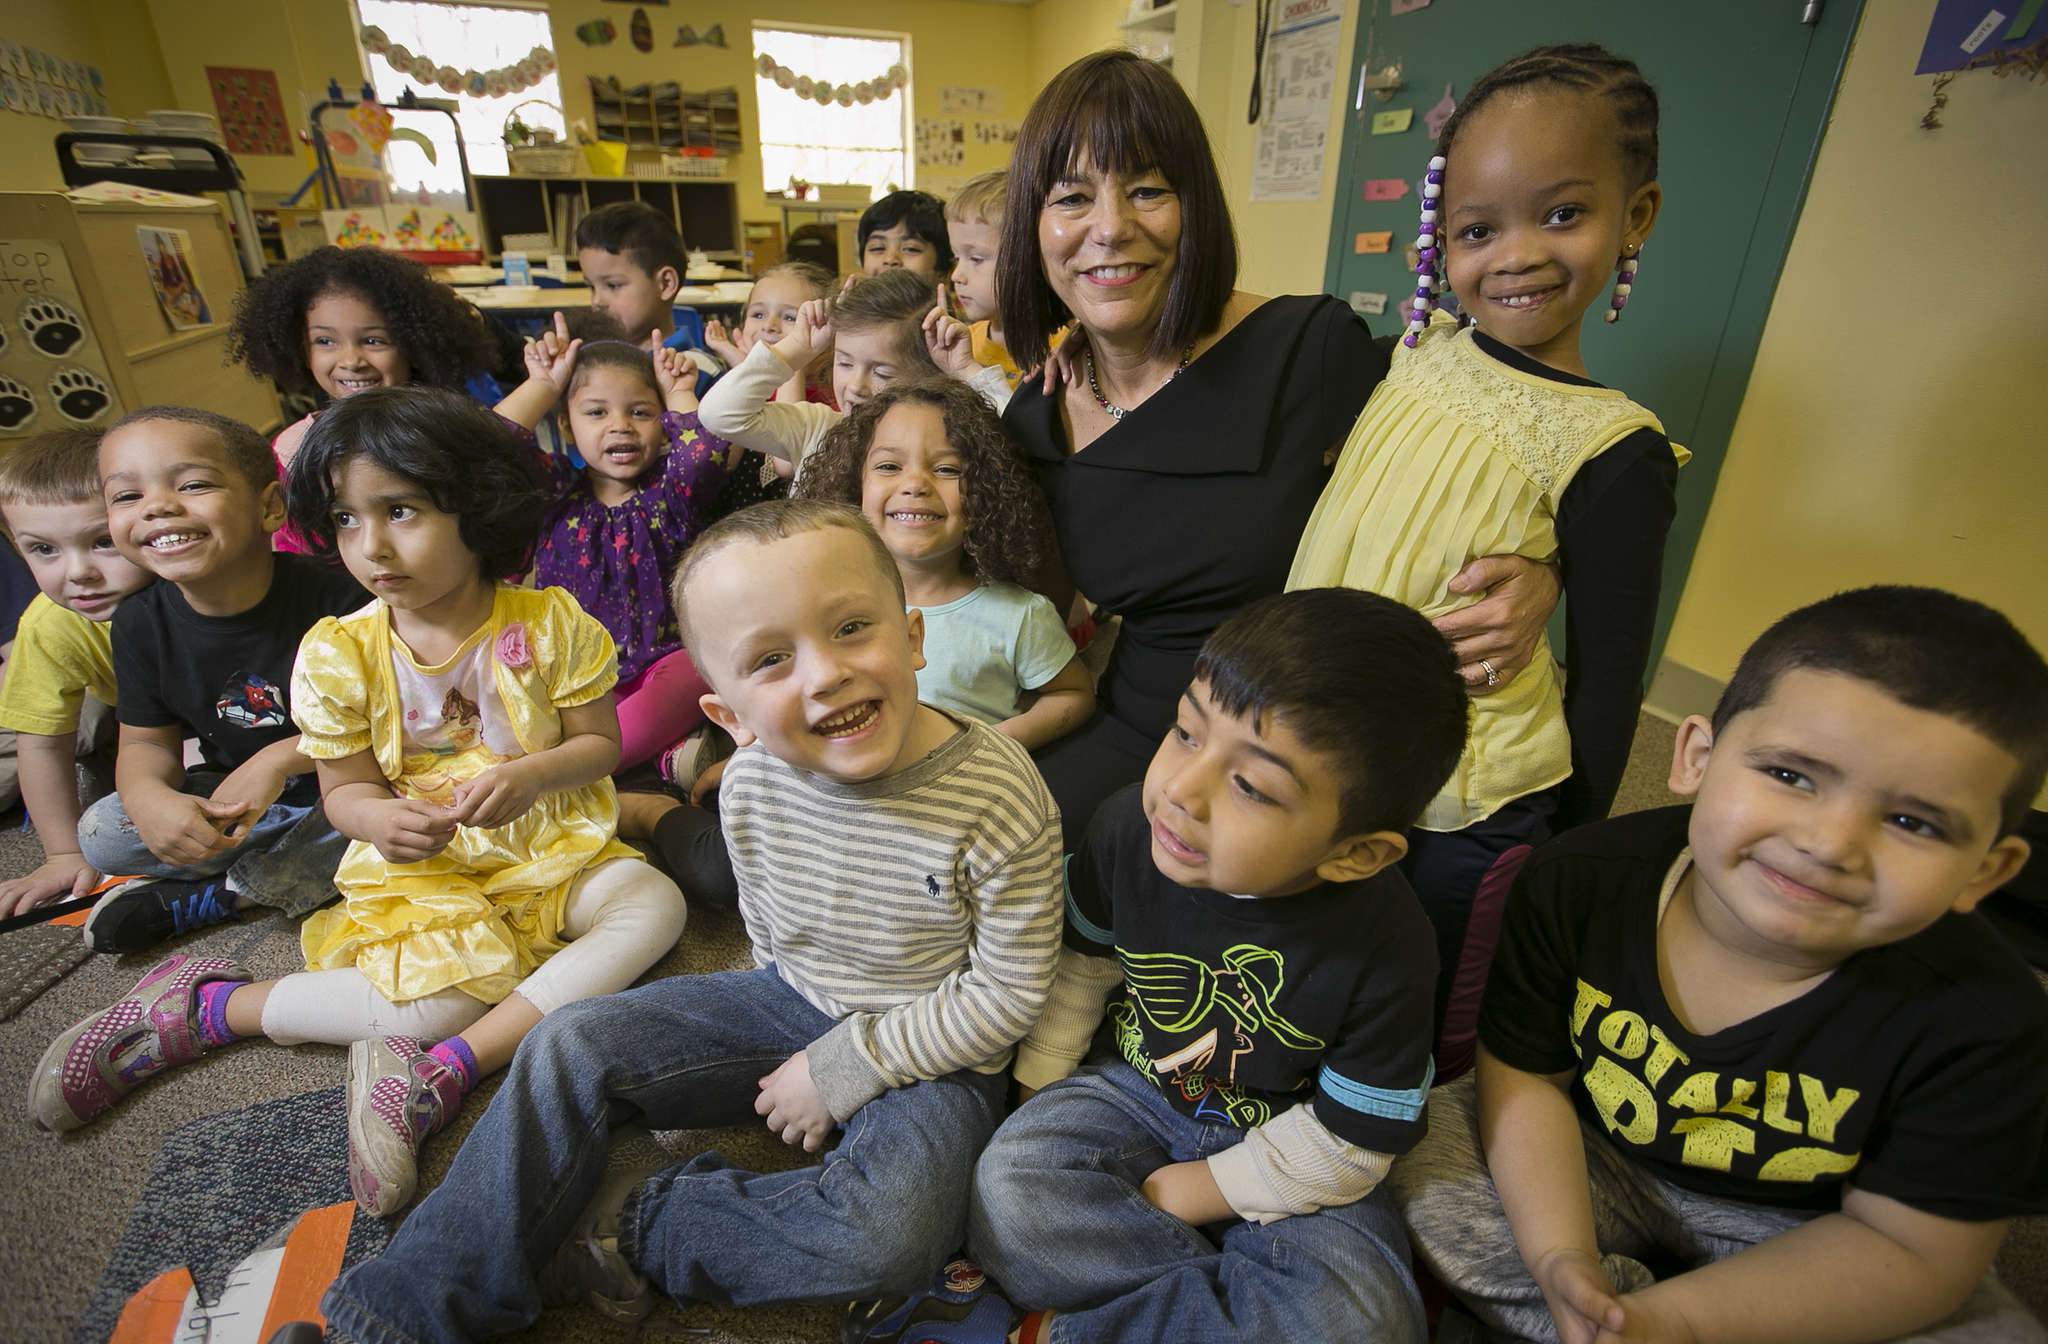 Kathy McHale, president of Special People in Northeast Inc. (SPIN), with a group of 3- and 4-year-olds. Since high school, McHale has been drawn to altruism and volunteering.